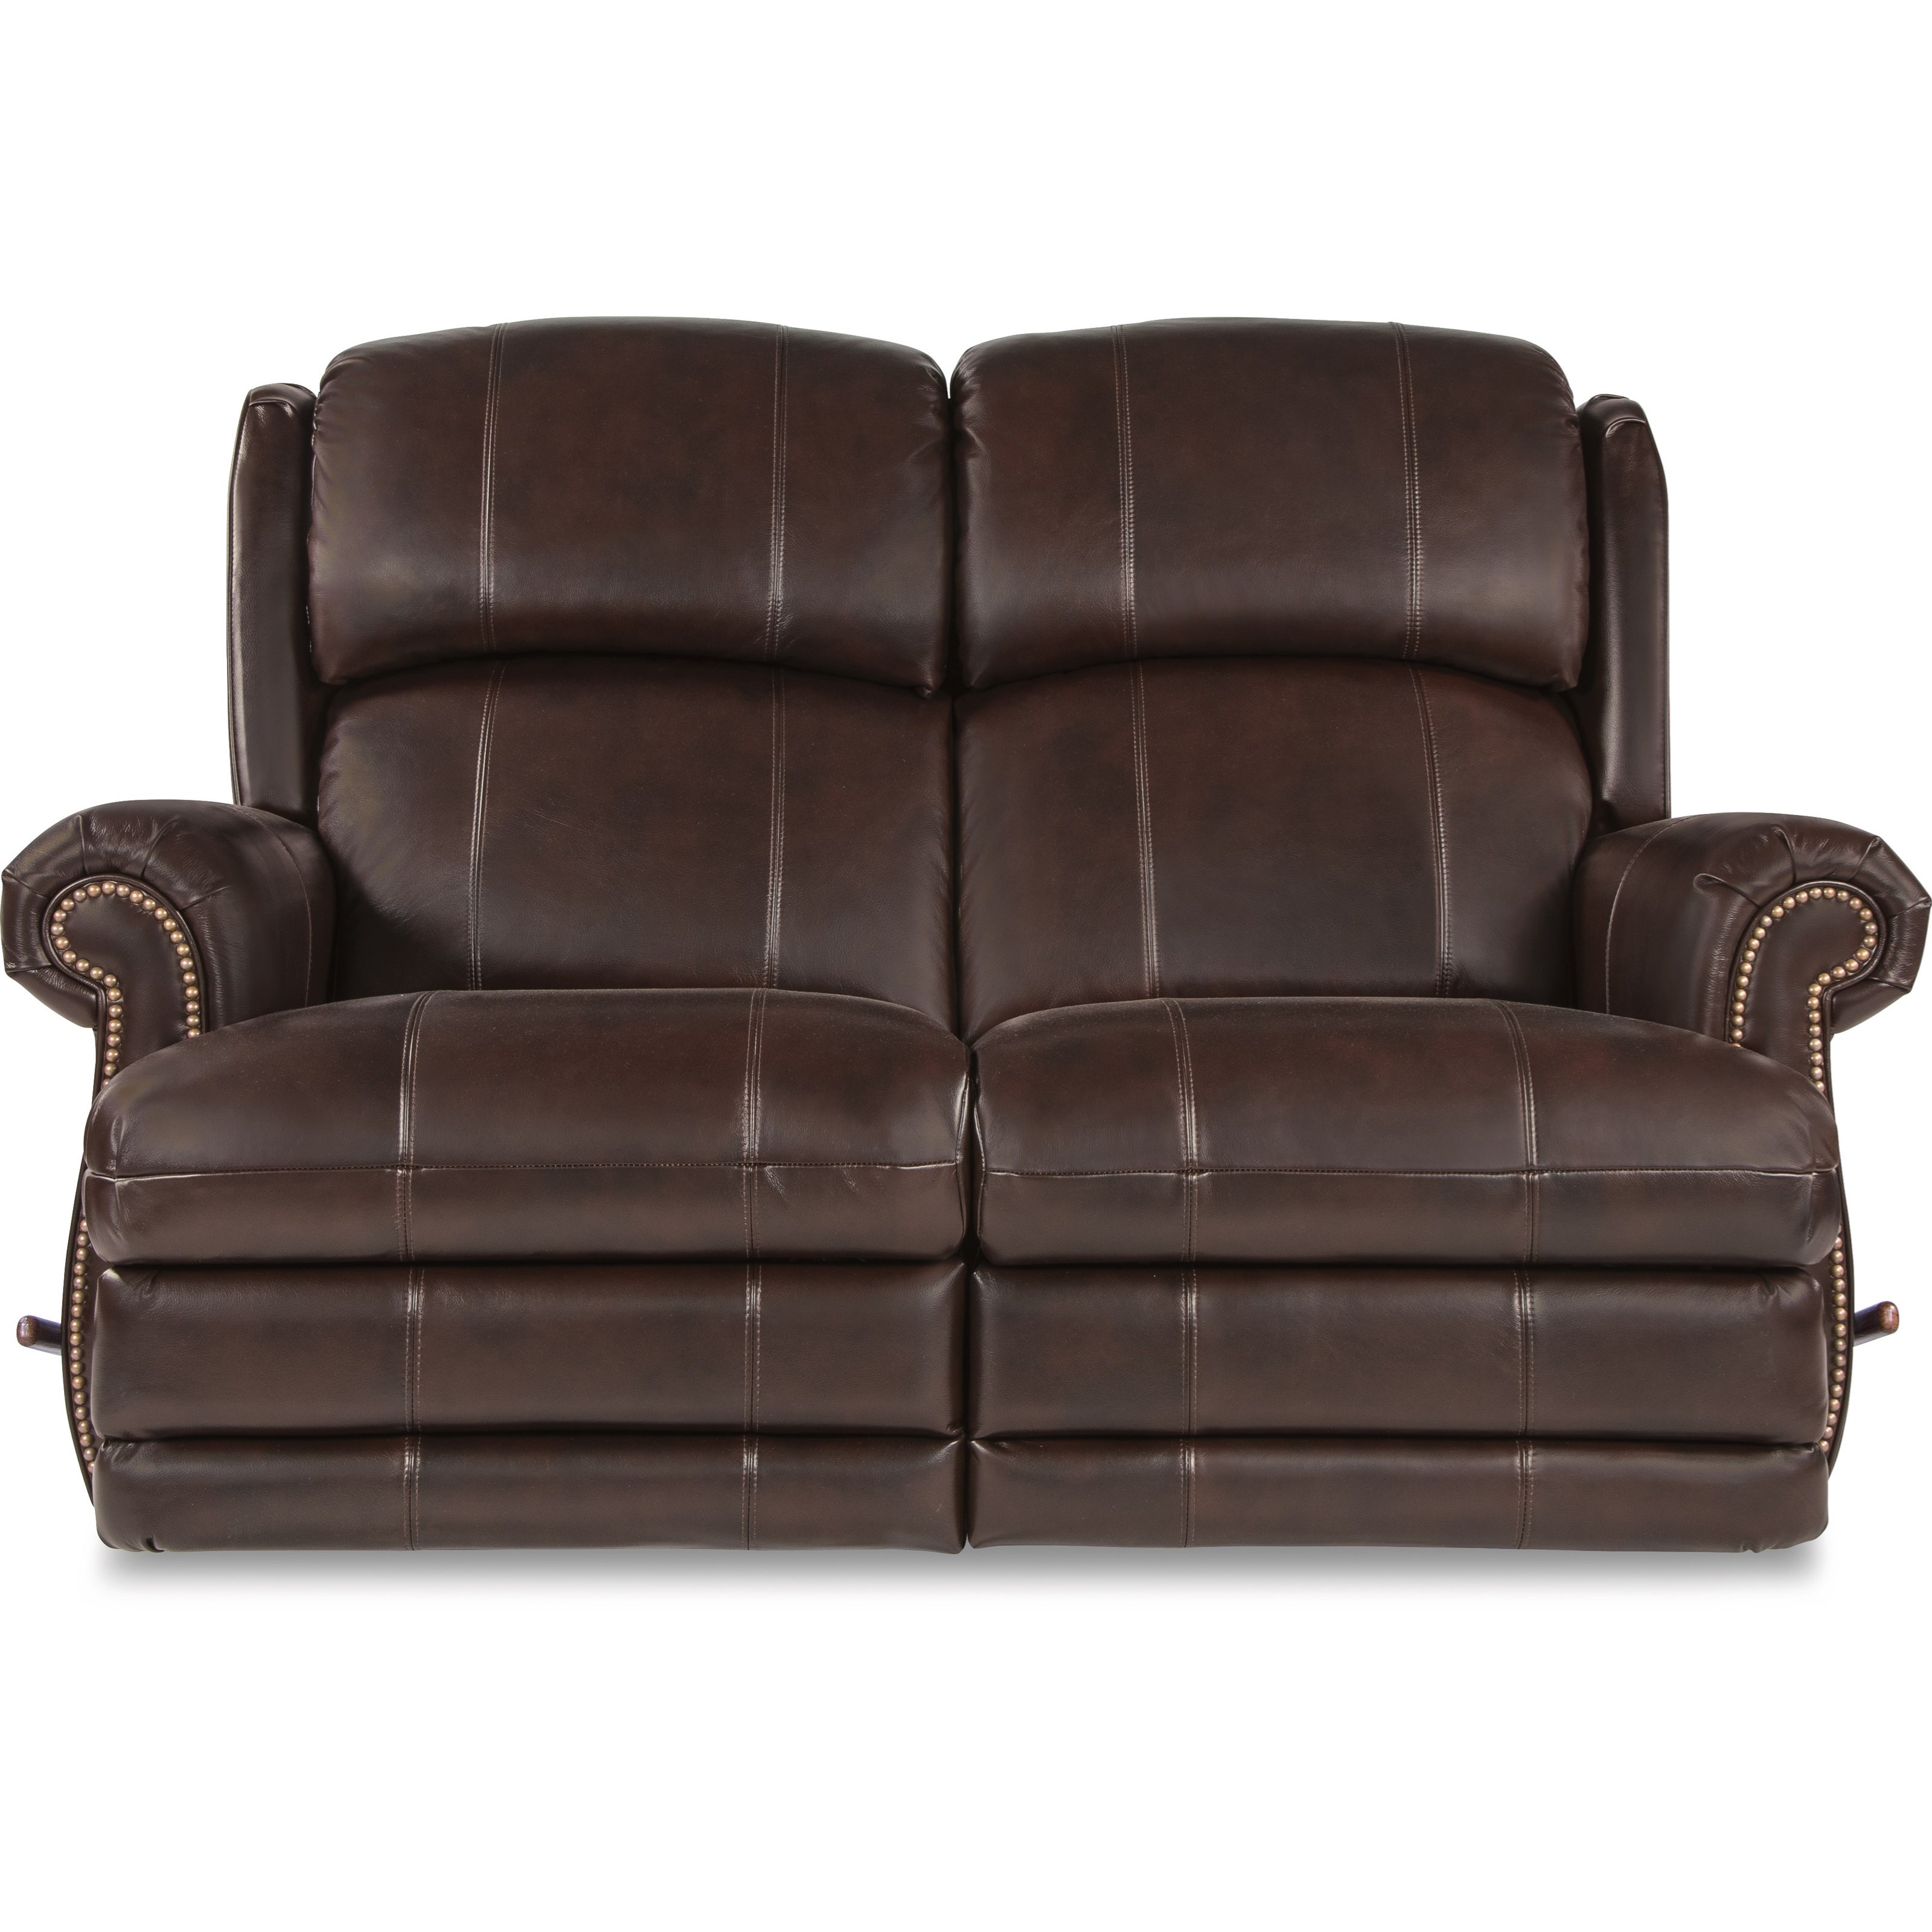 recliner easton loveseat sofa reclining z sale chair boy mag reviews colors la leather wayfair gallery things lazy bench recliners